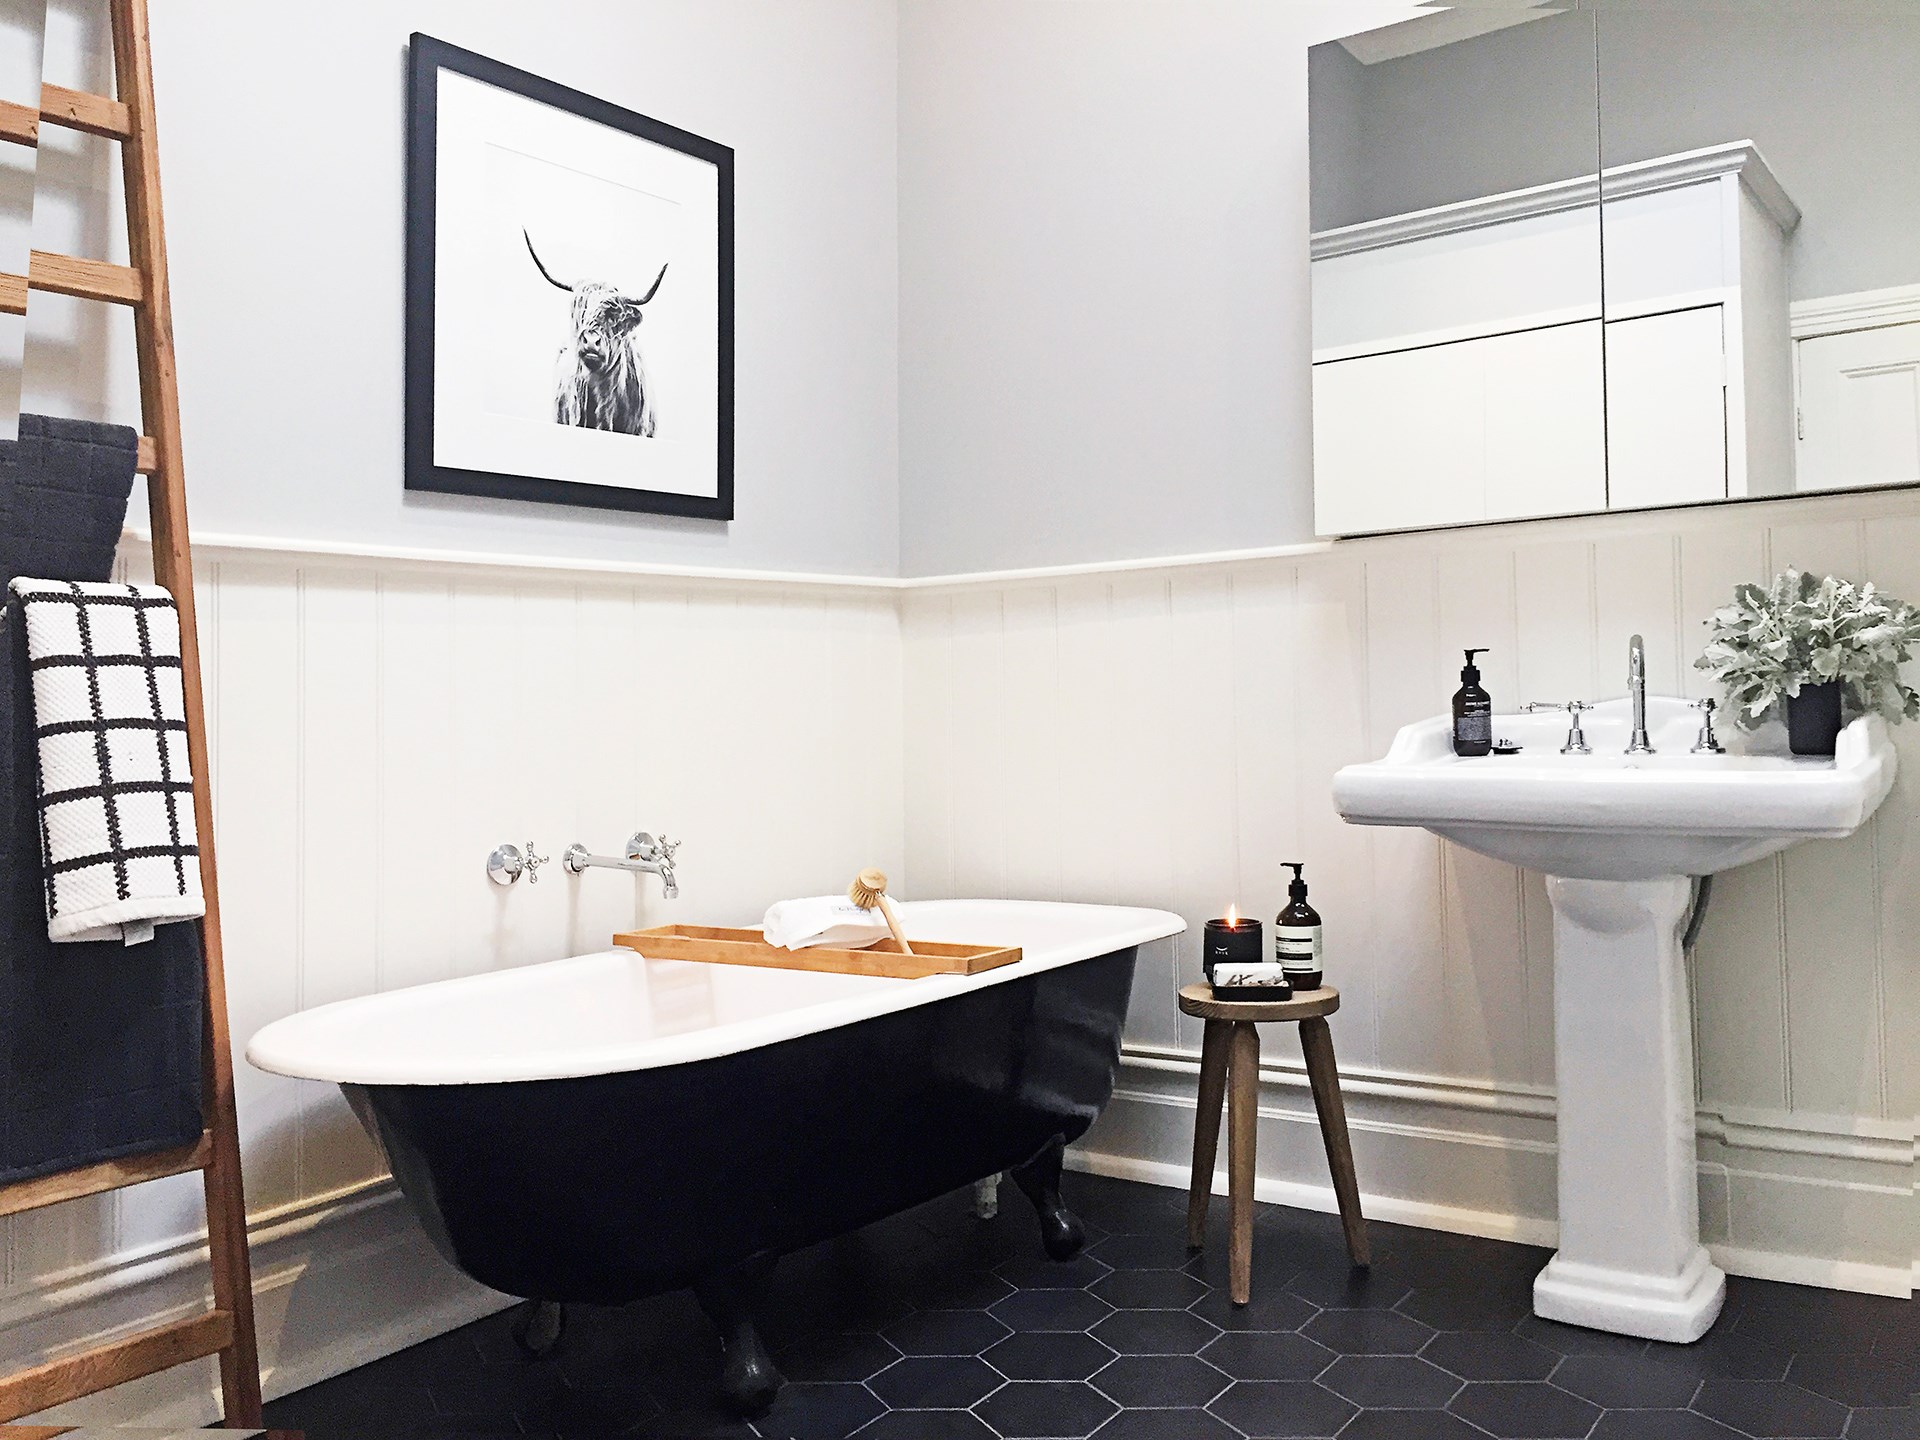 The bathroom in this [Victorian cottage](http://www.homestolove.com.au/gallery-michelles-victorian-cottage-renovation-2255) combines contemporary style with old world charm for a timeless appeal. *Photo: homes+*